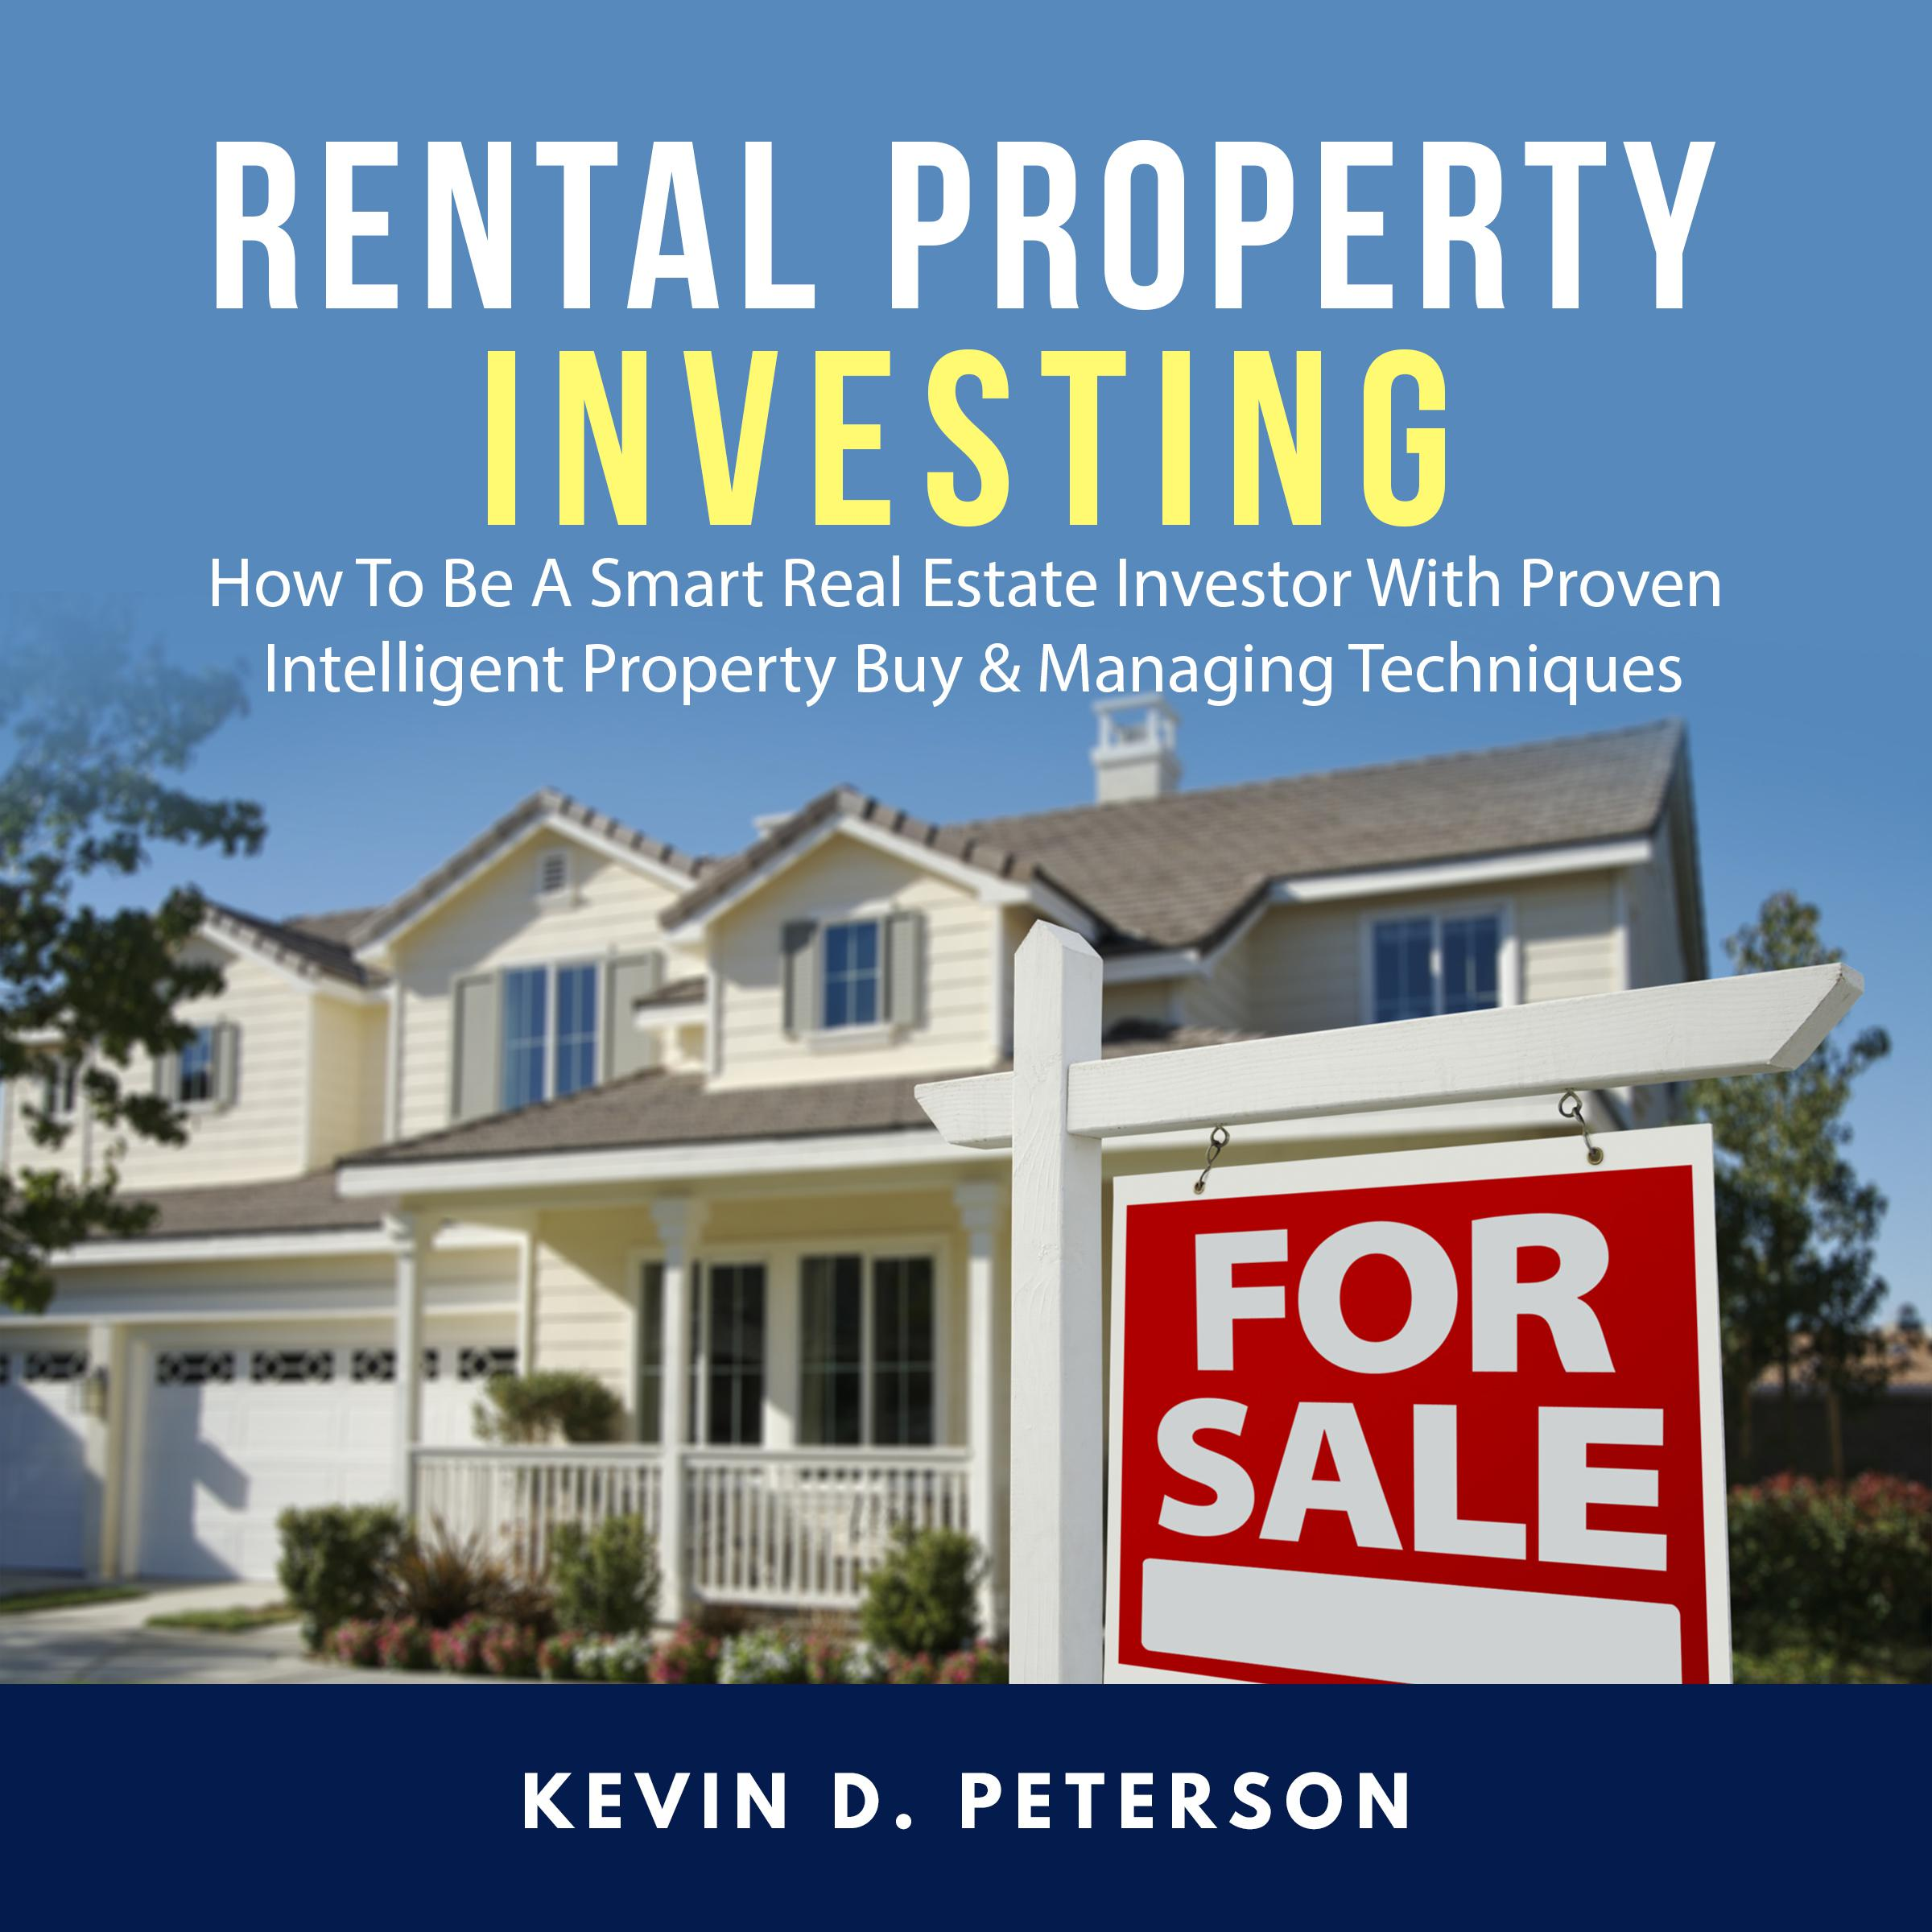 Rental Properties Websites: Rental Property Investing: How To Be A Smart Real Estate